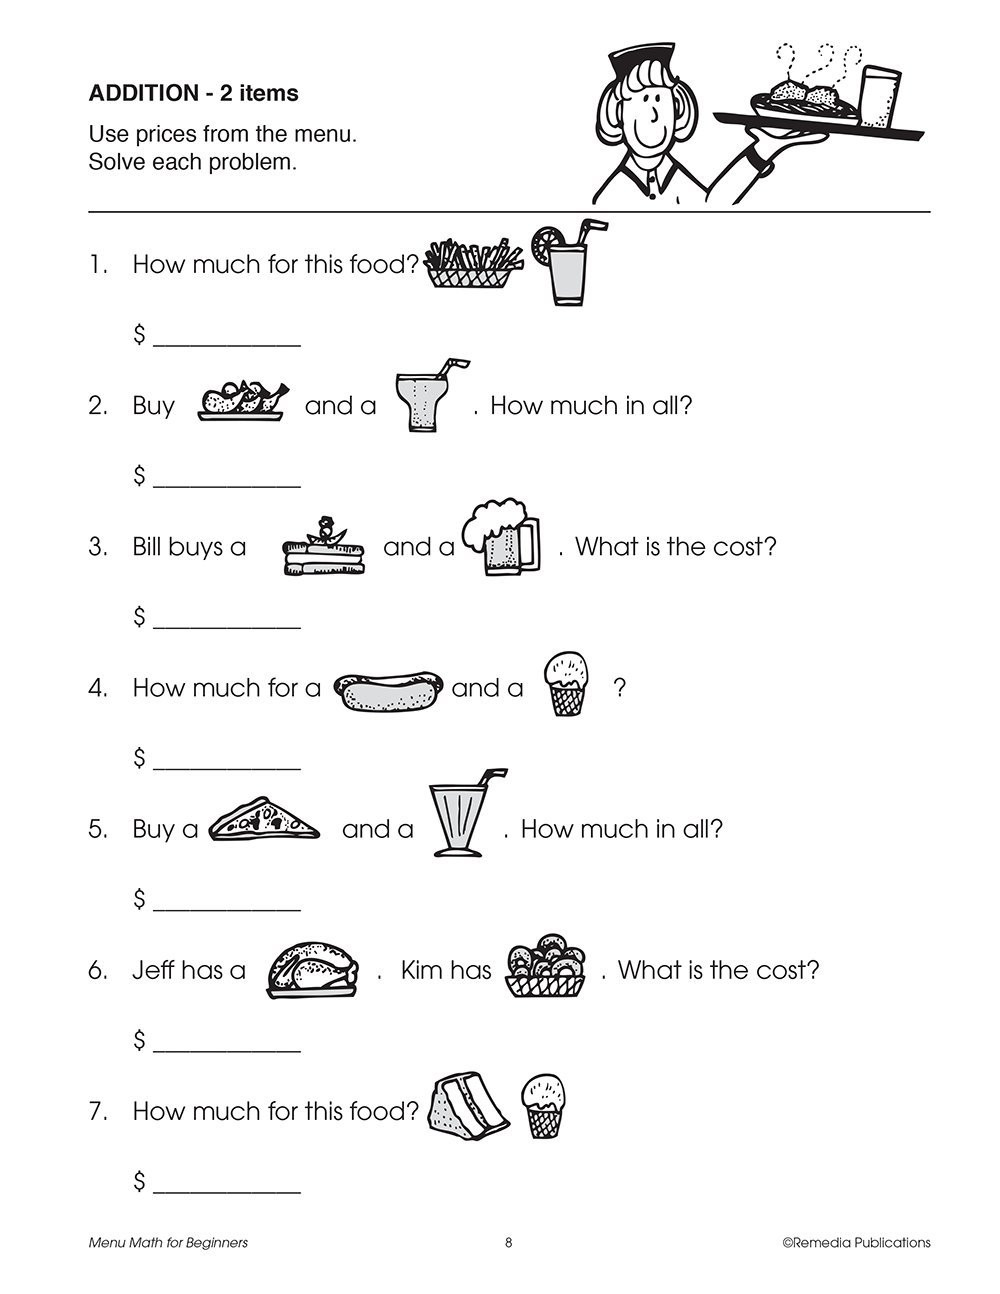 Menu Math Worksheets Menu Math for Beginners Johnson Barbara